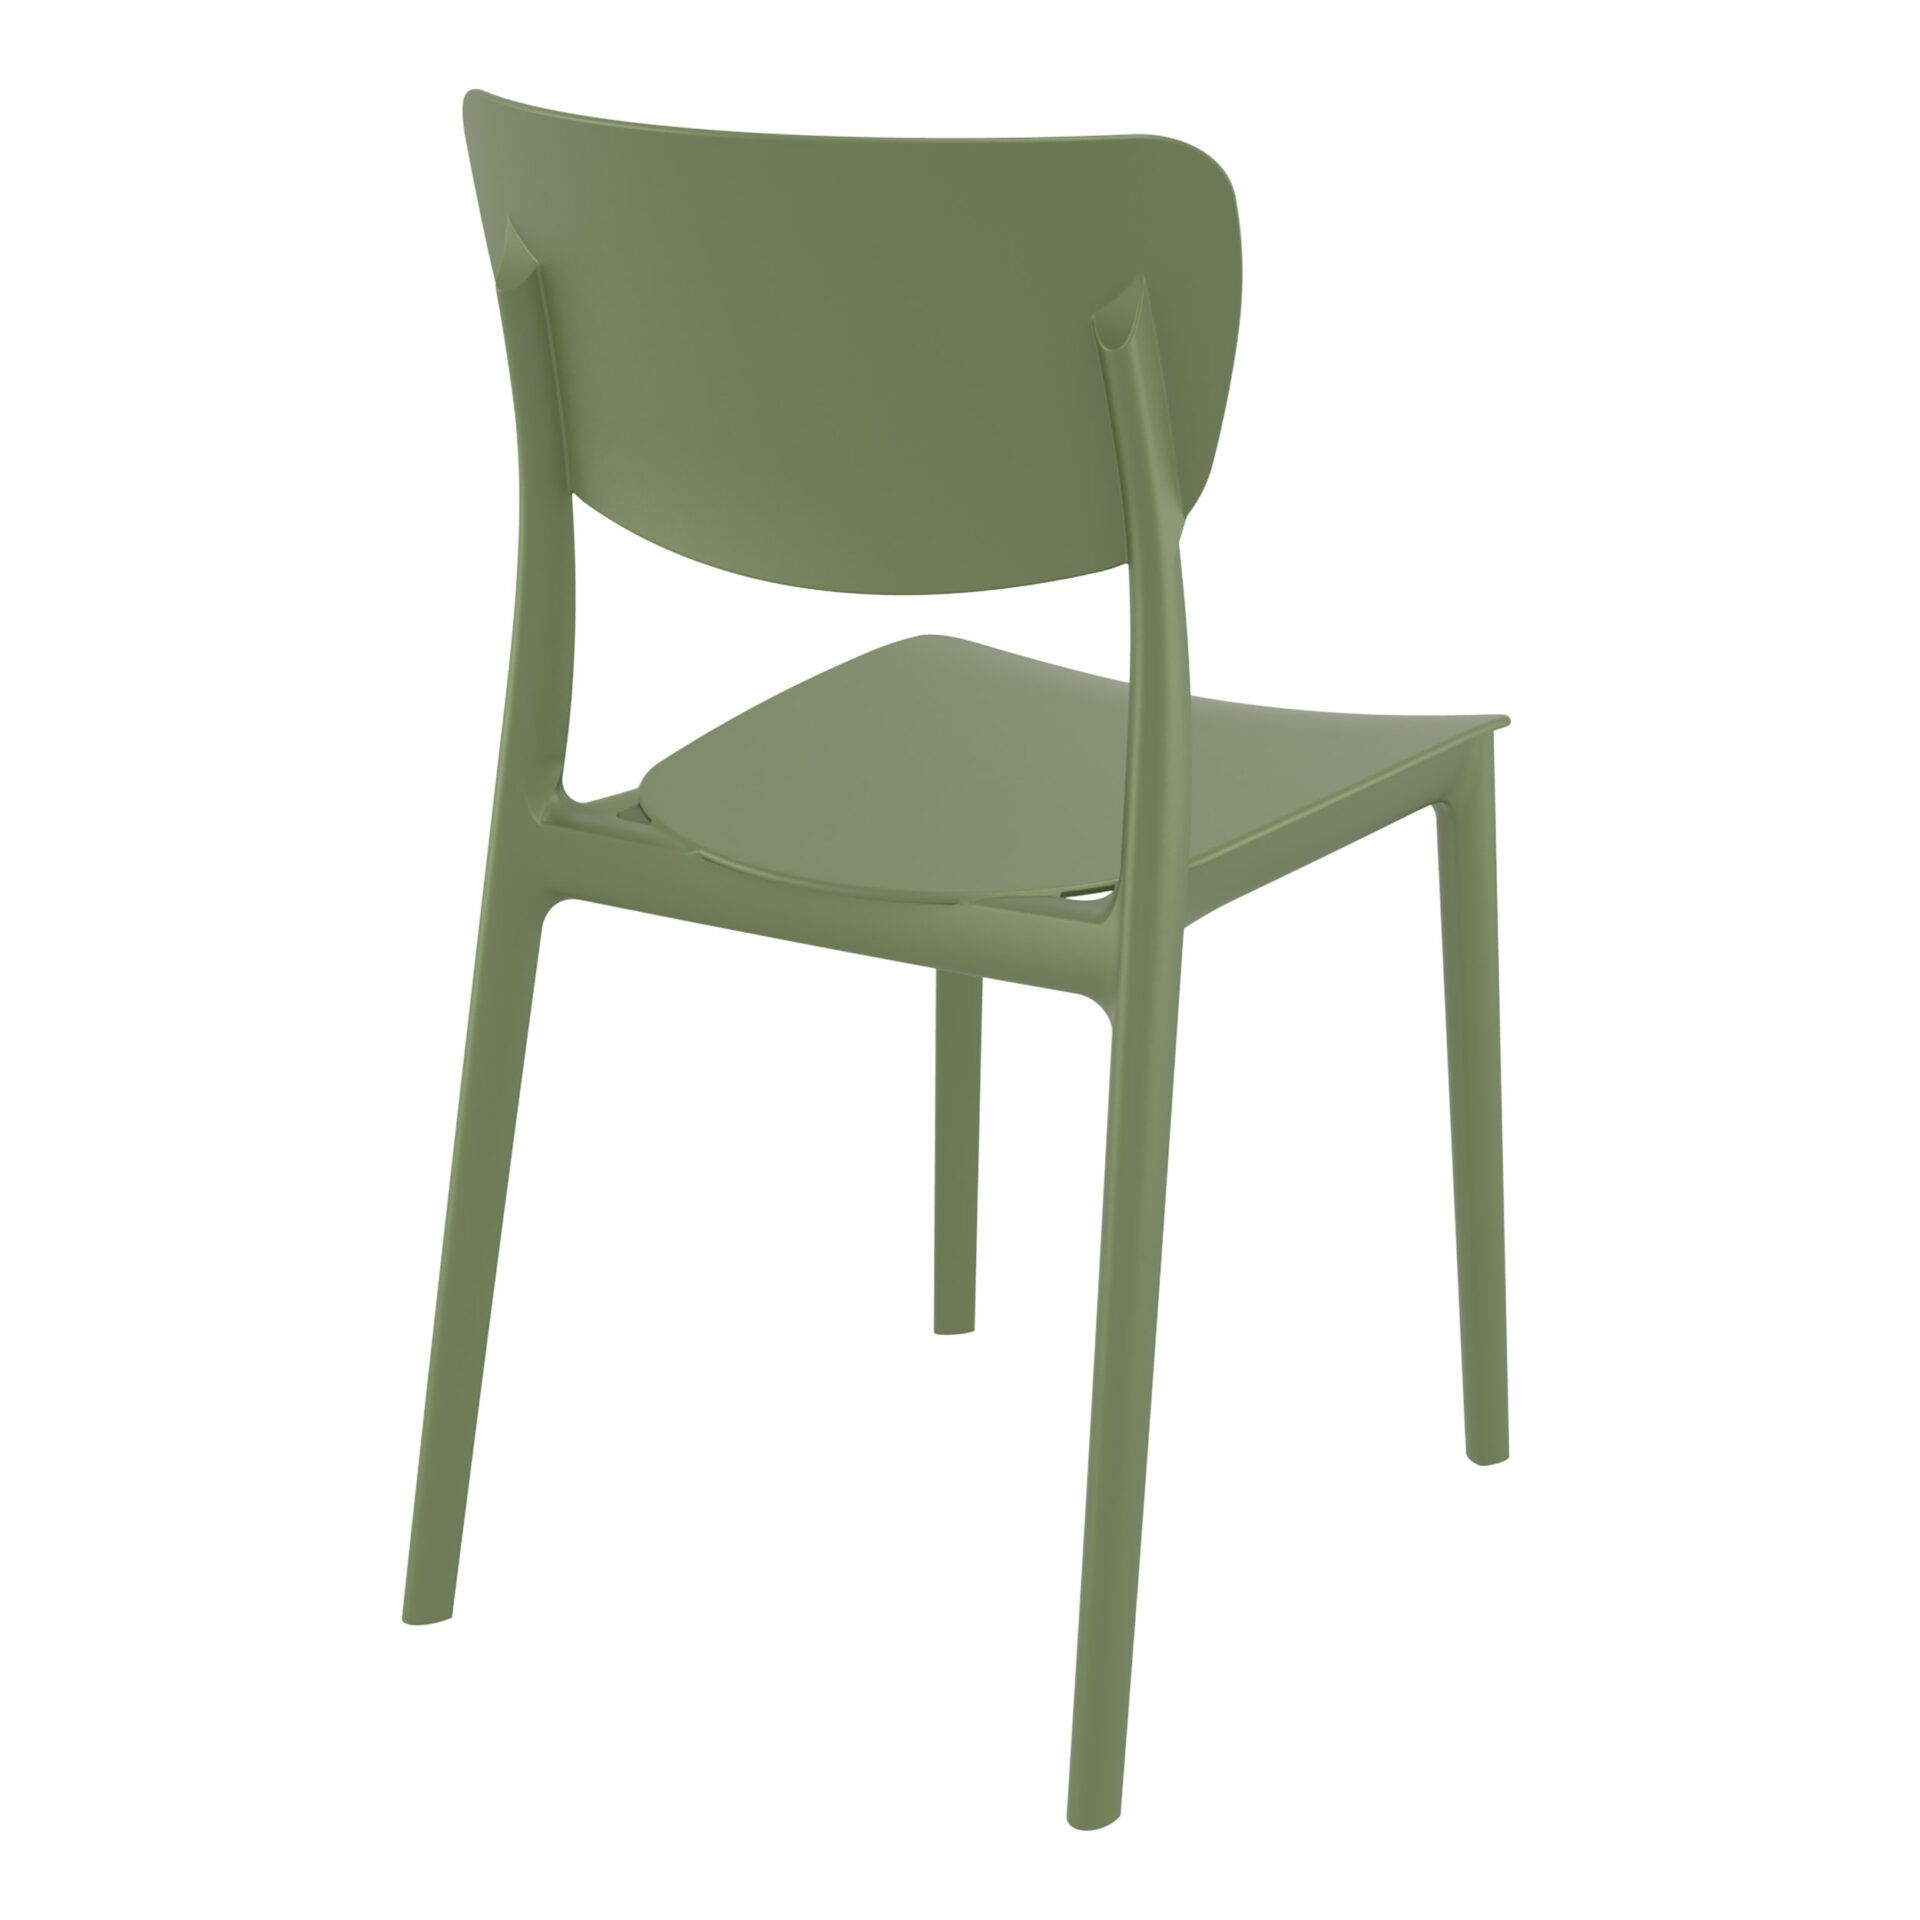 polypropylene outdoor dining monna chair olive green back side